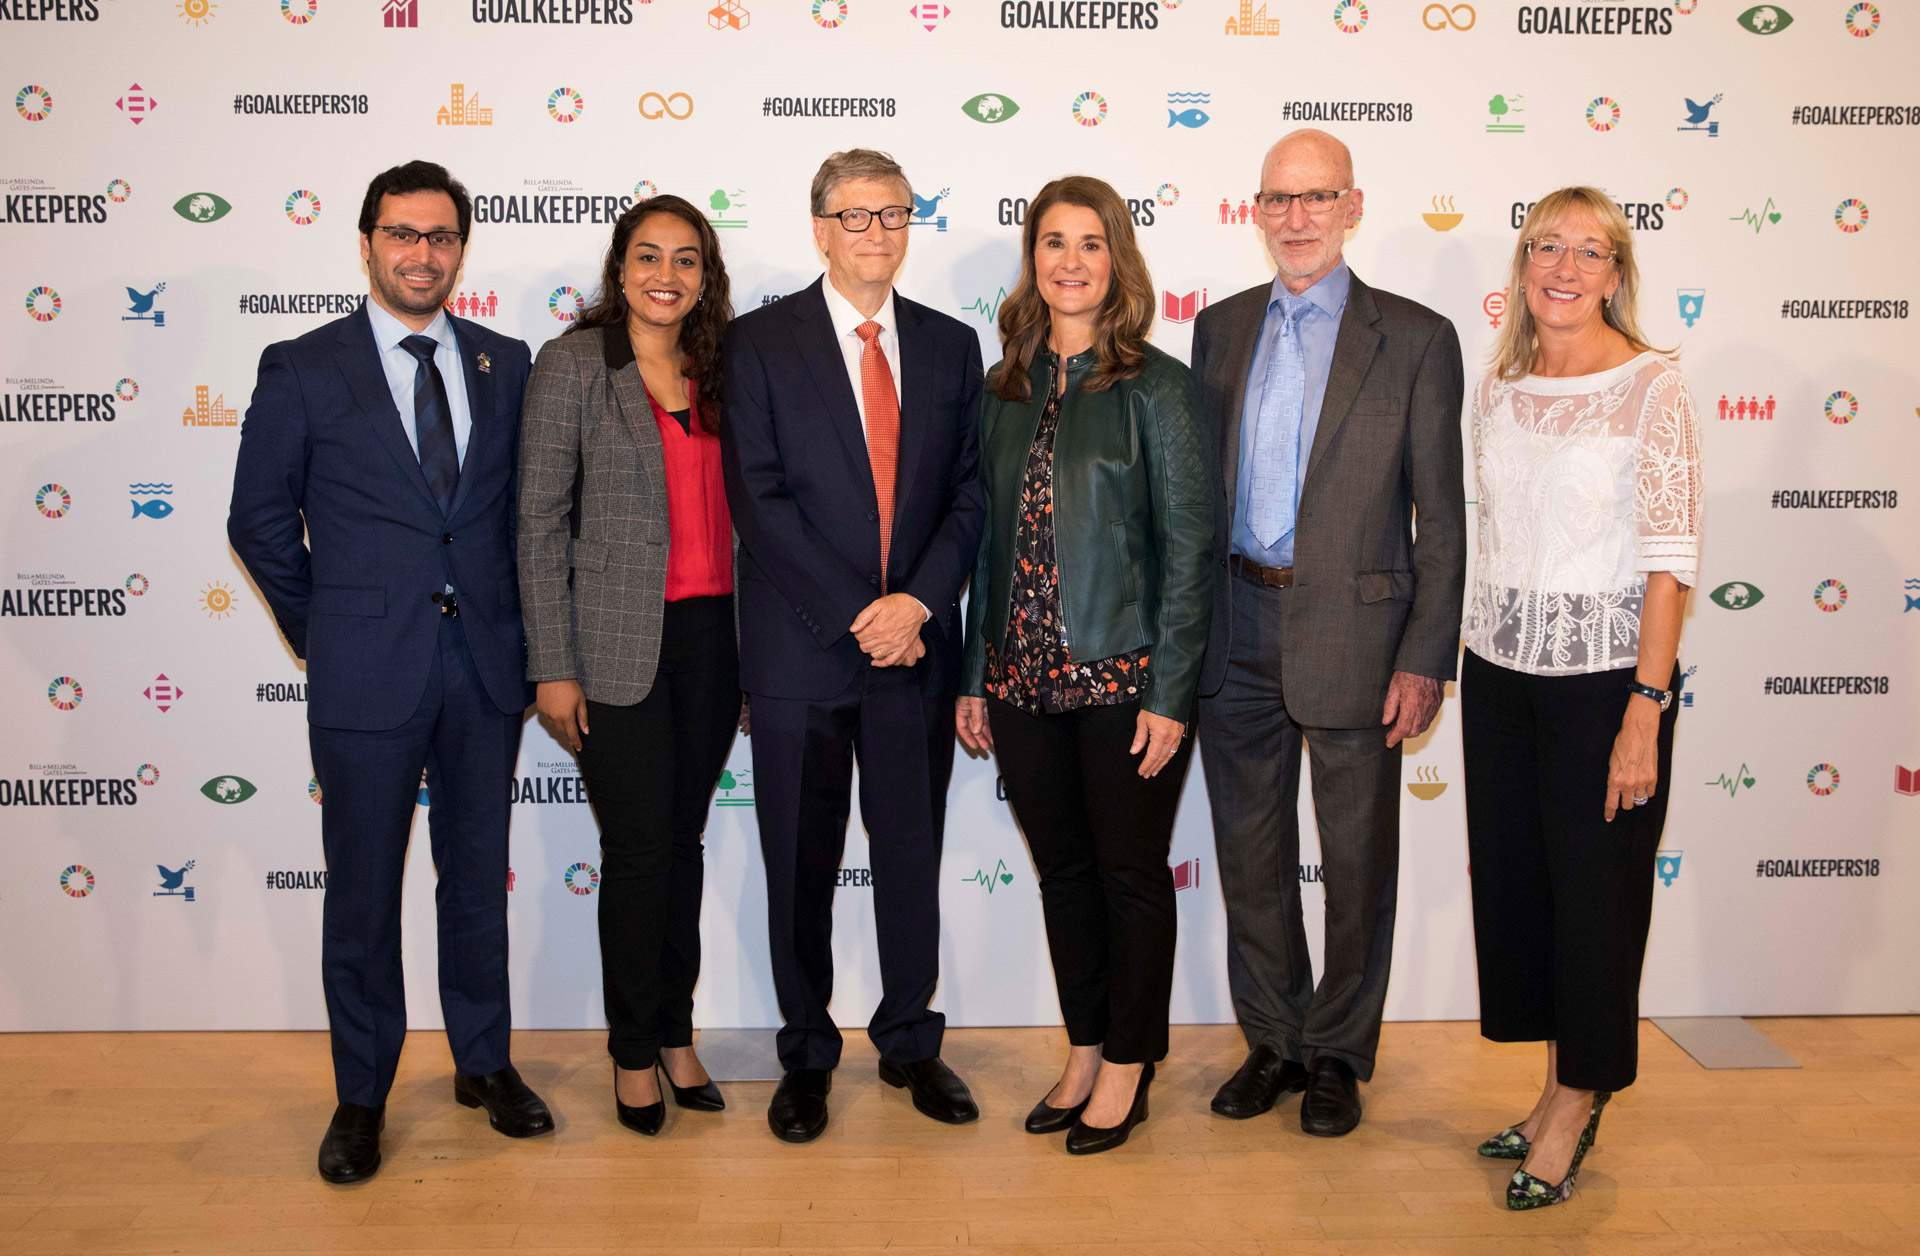 Bill & Melinda Gates Foundation: Goalkeepers 2018. From left: Tariq Al Garg (Dubai Cares, CEO), Dr Geetha Murali (CEO Room to Read); Bill Gates; Melissa Gates; John Bothamley (Four Acre Trust), Marisa Drew, CEO Impact Advisory and Finance Credit Suisse.